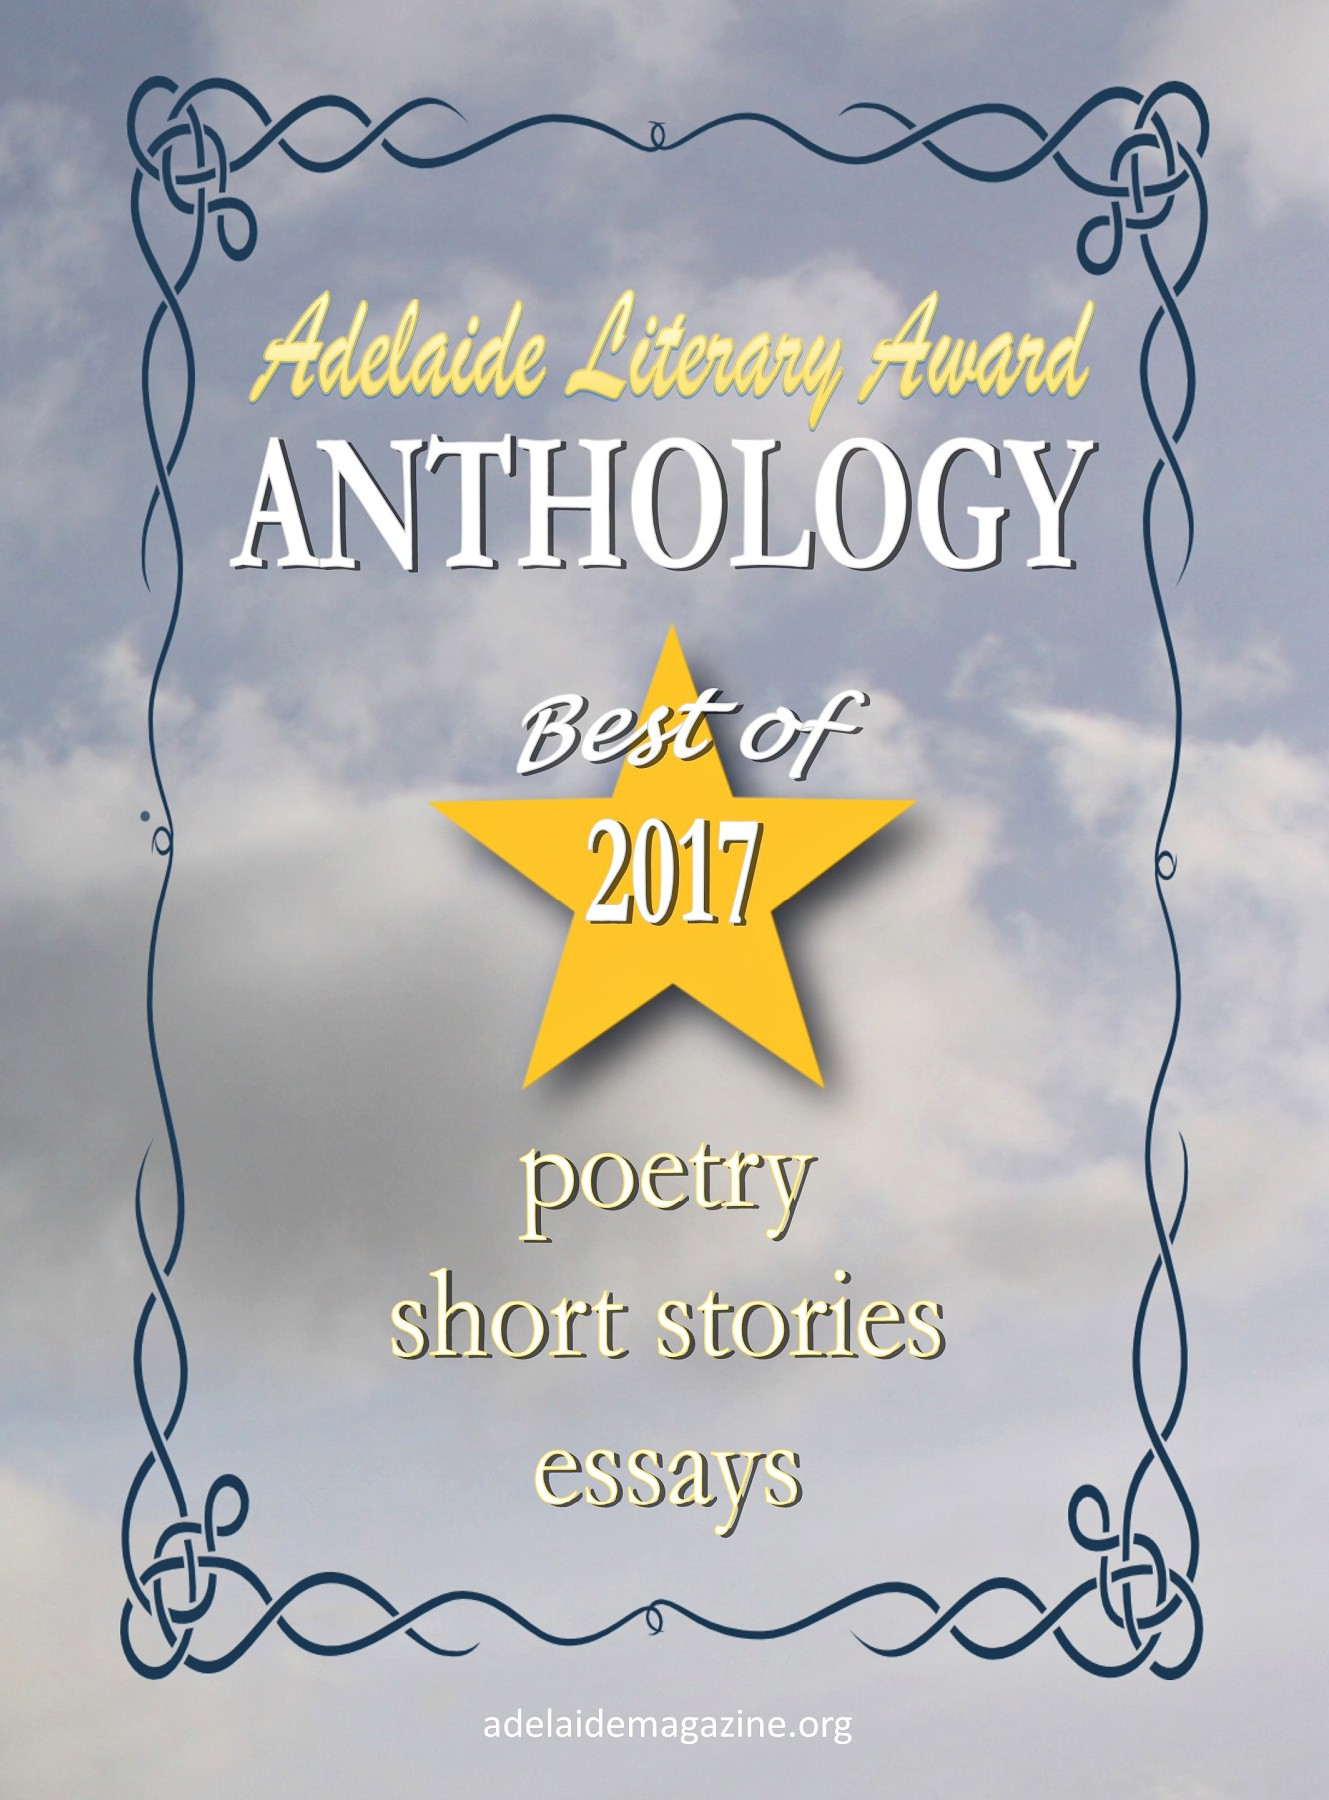 Adelaide Literary Award Anthology 2017 Pages 1 - 50 - Text